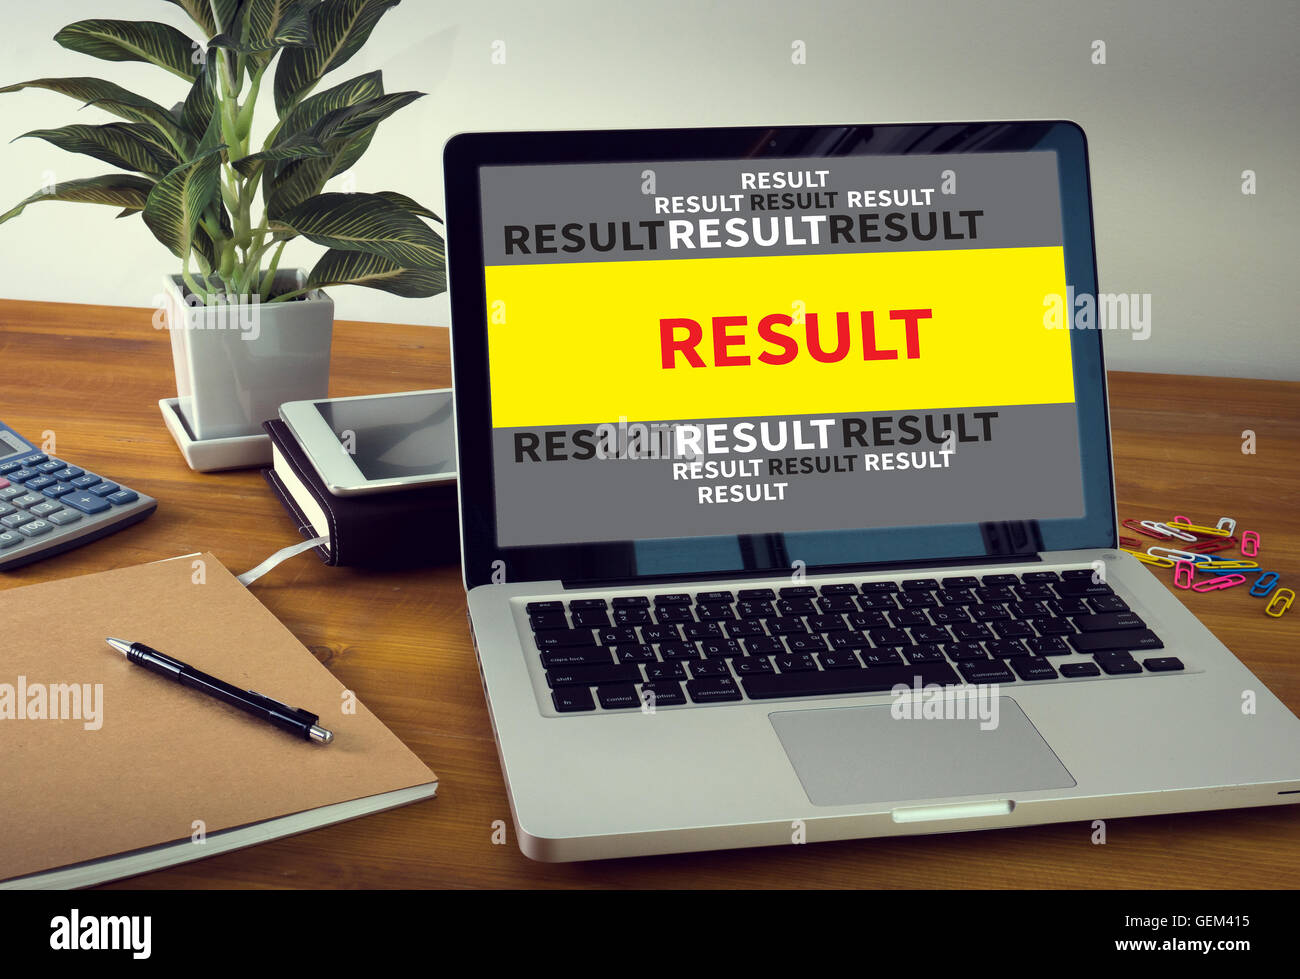 Laptop and RESULT Concept screen on table. Warm tone - Stock Image